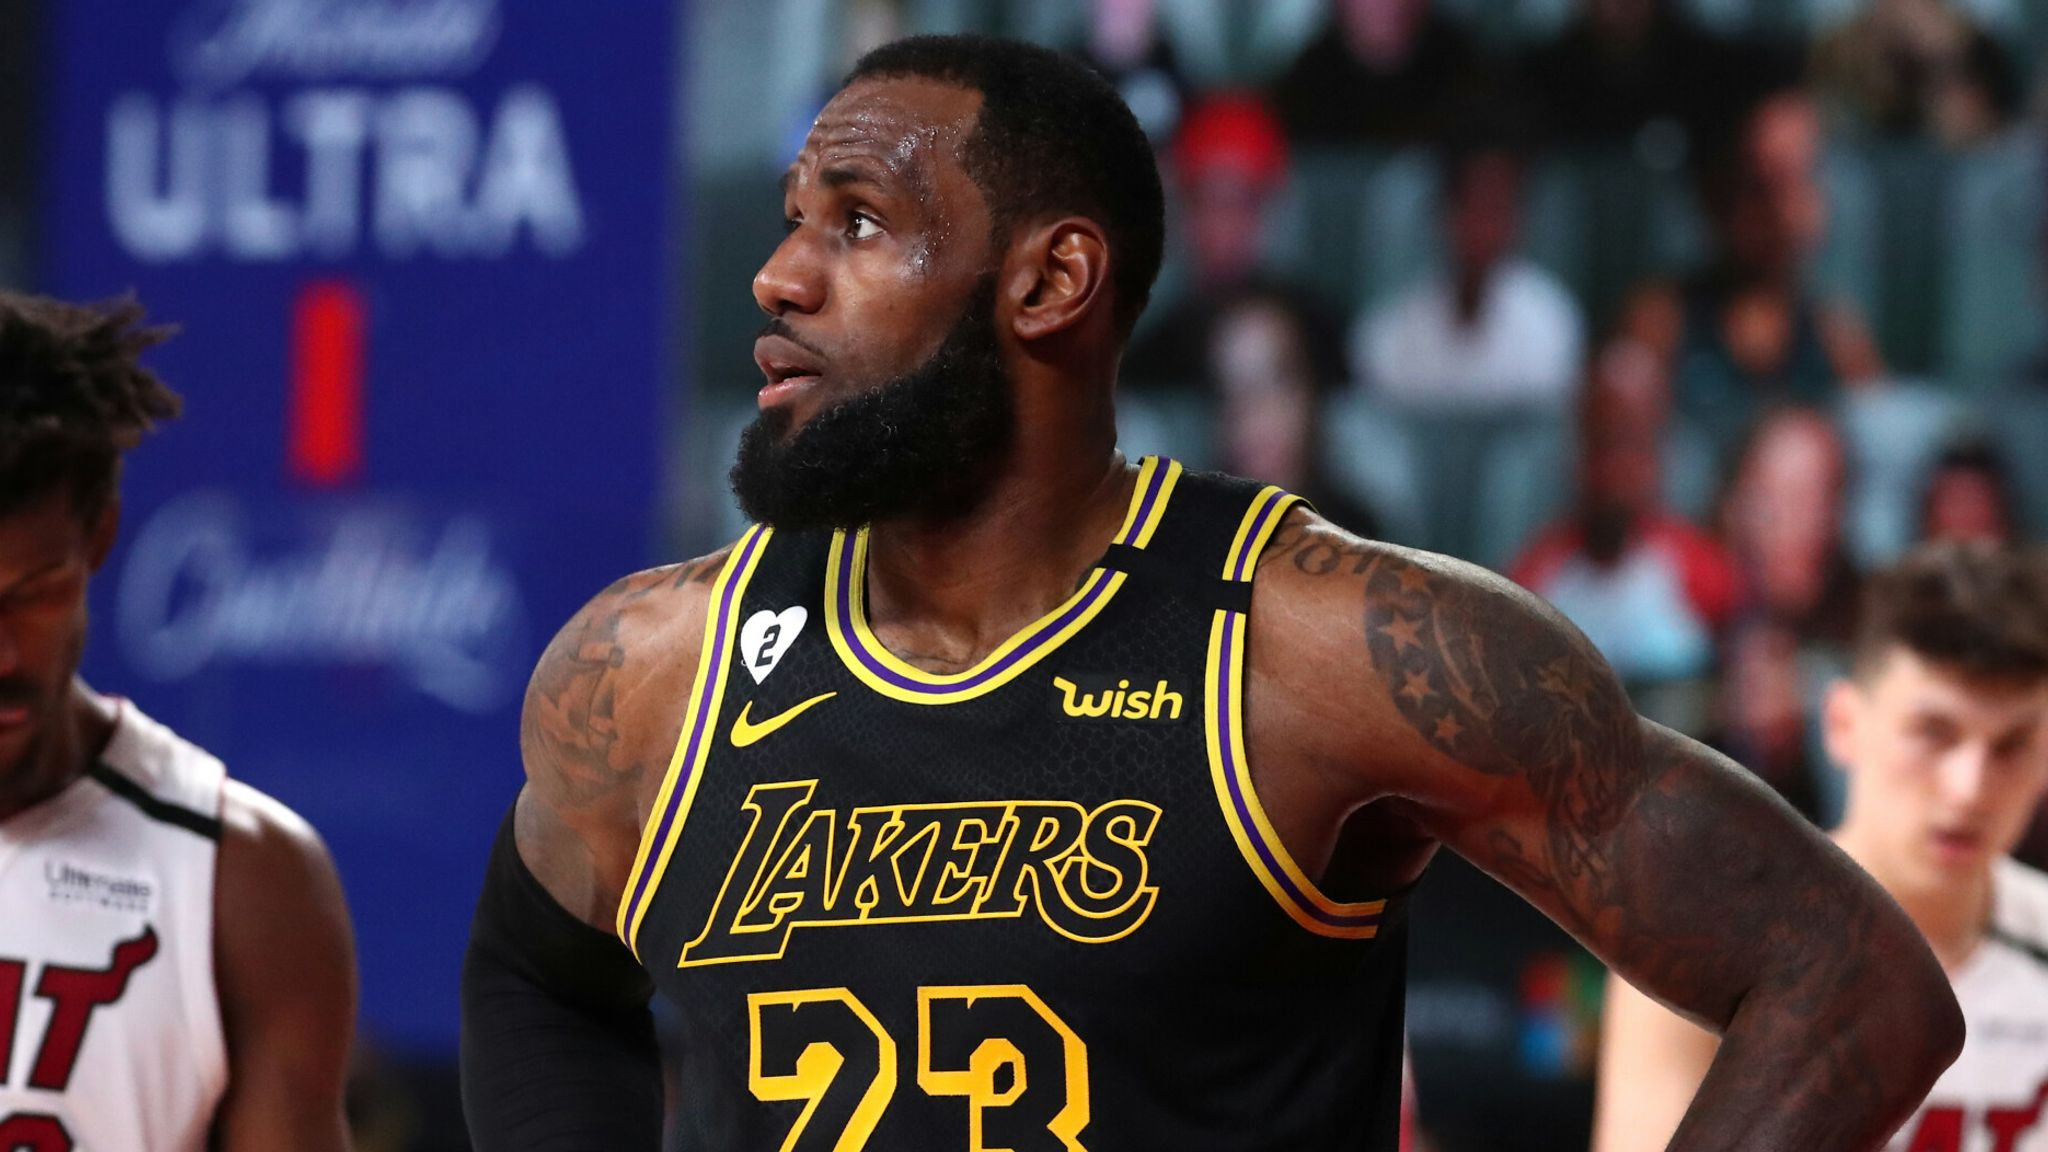 Nba Finals 2020 Lebron James Lakers Coronation Has To Wait As Heat Force Game 6 Nba News Sky Sports